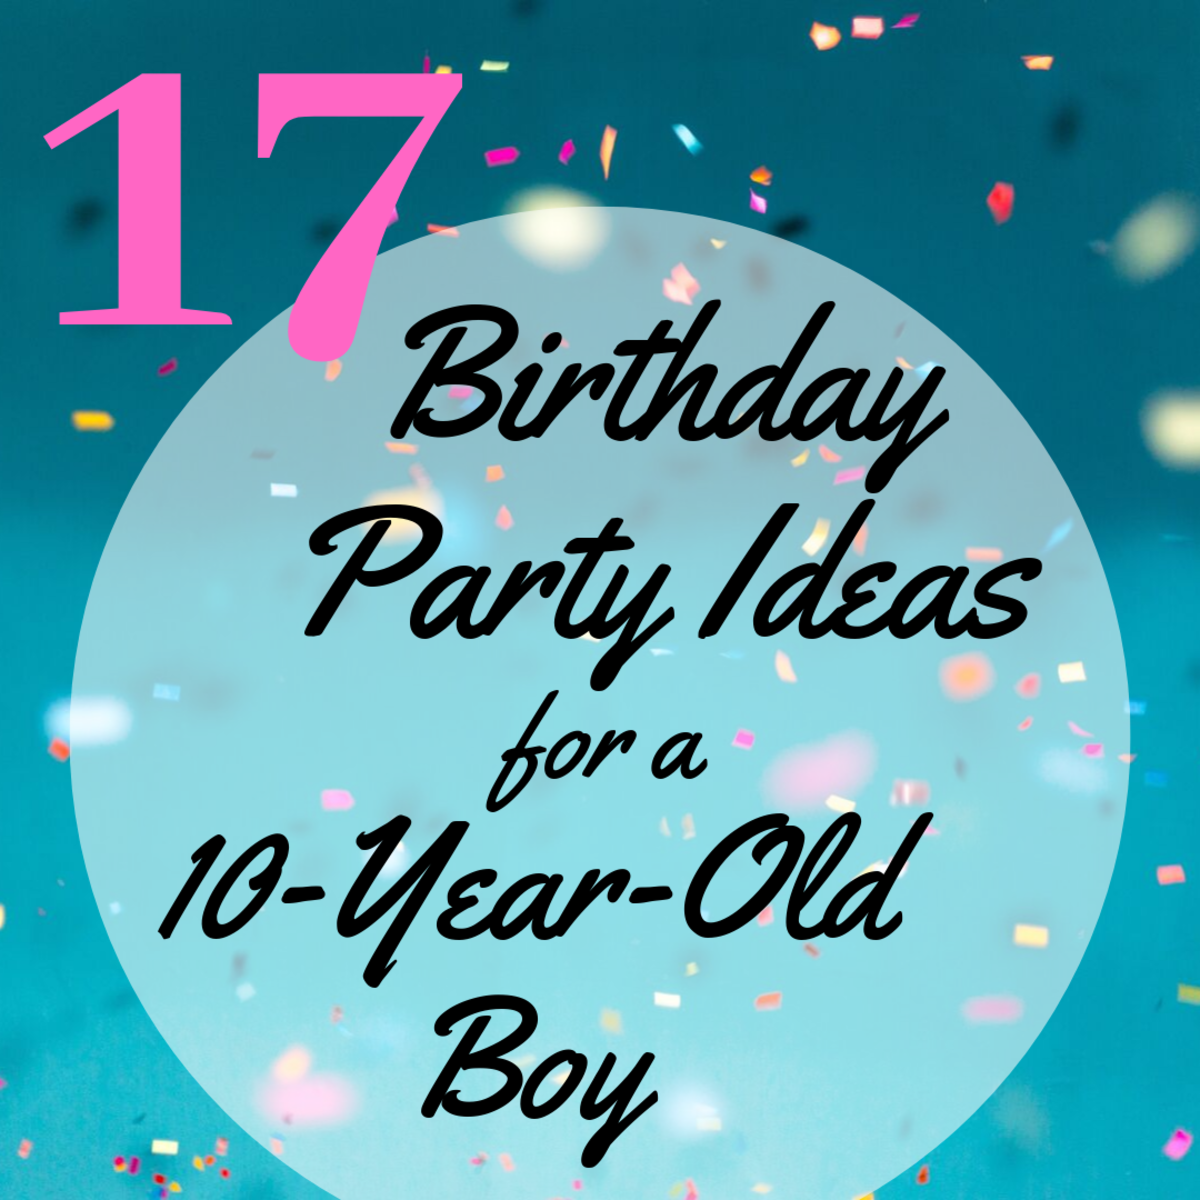 17 Birthday Party Ideas for a 10-Year-Old Boy